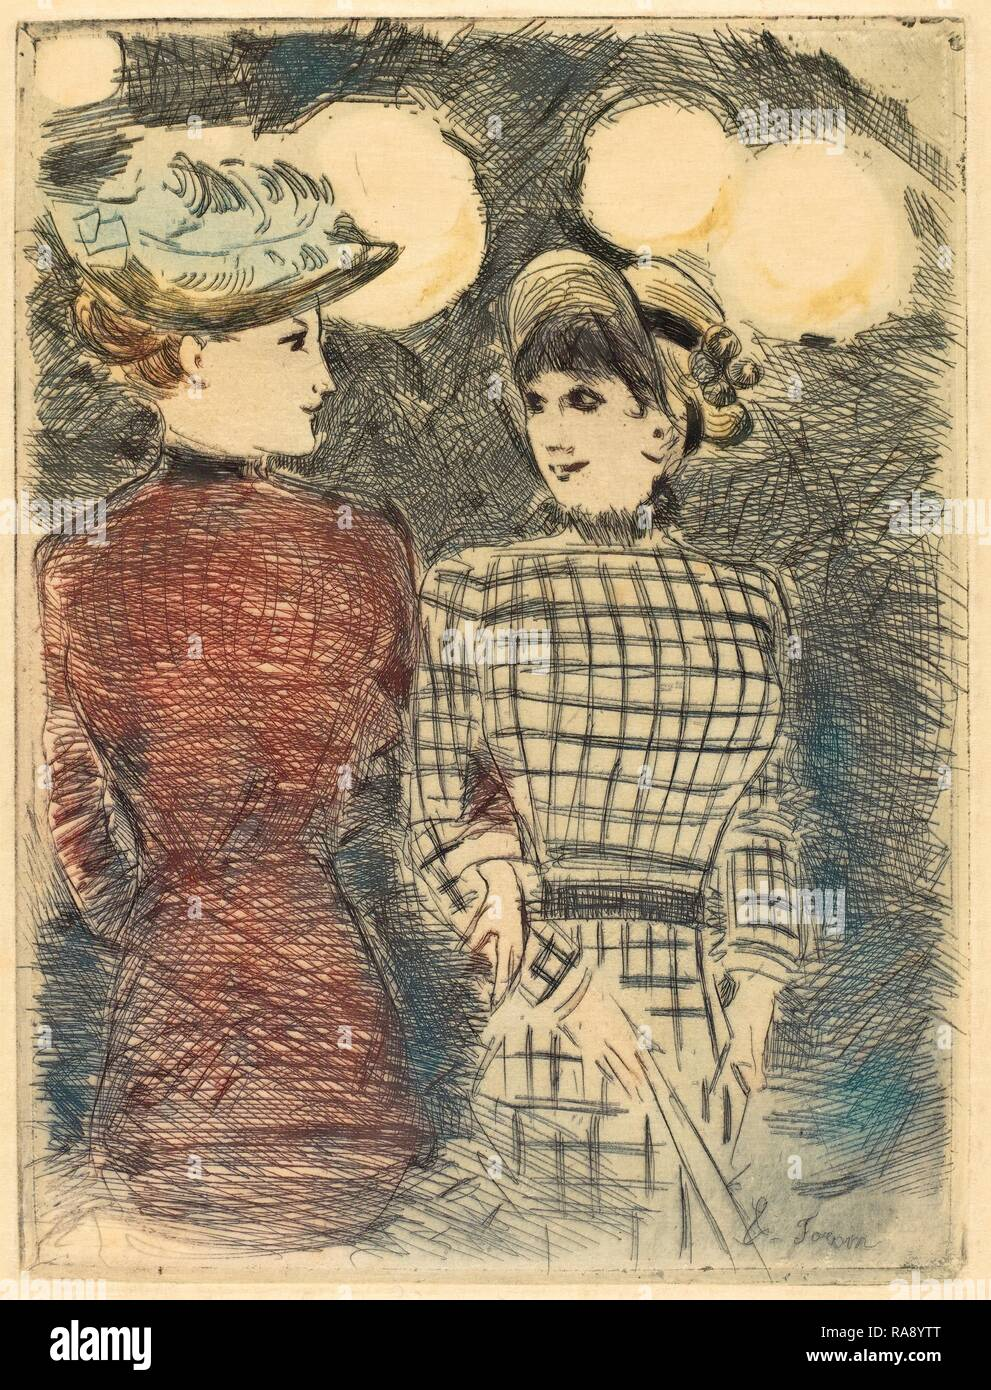 Jean-Louis Forain (French, 1852 - 1931), To Bullier's, c. 1876, color etching. Reimagined by Gibon. Classic art with reimagined - Stock Image